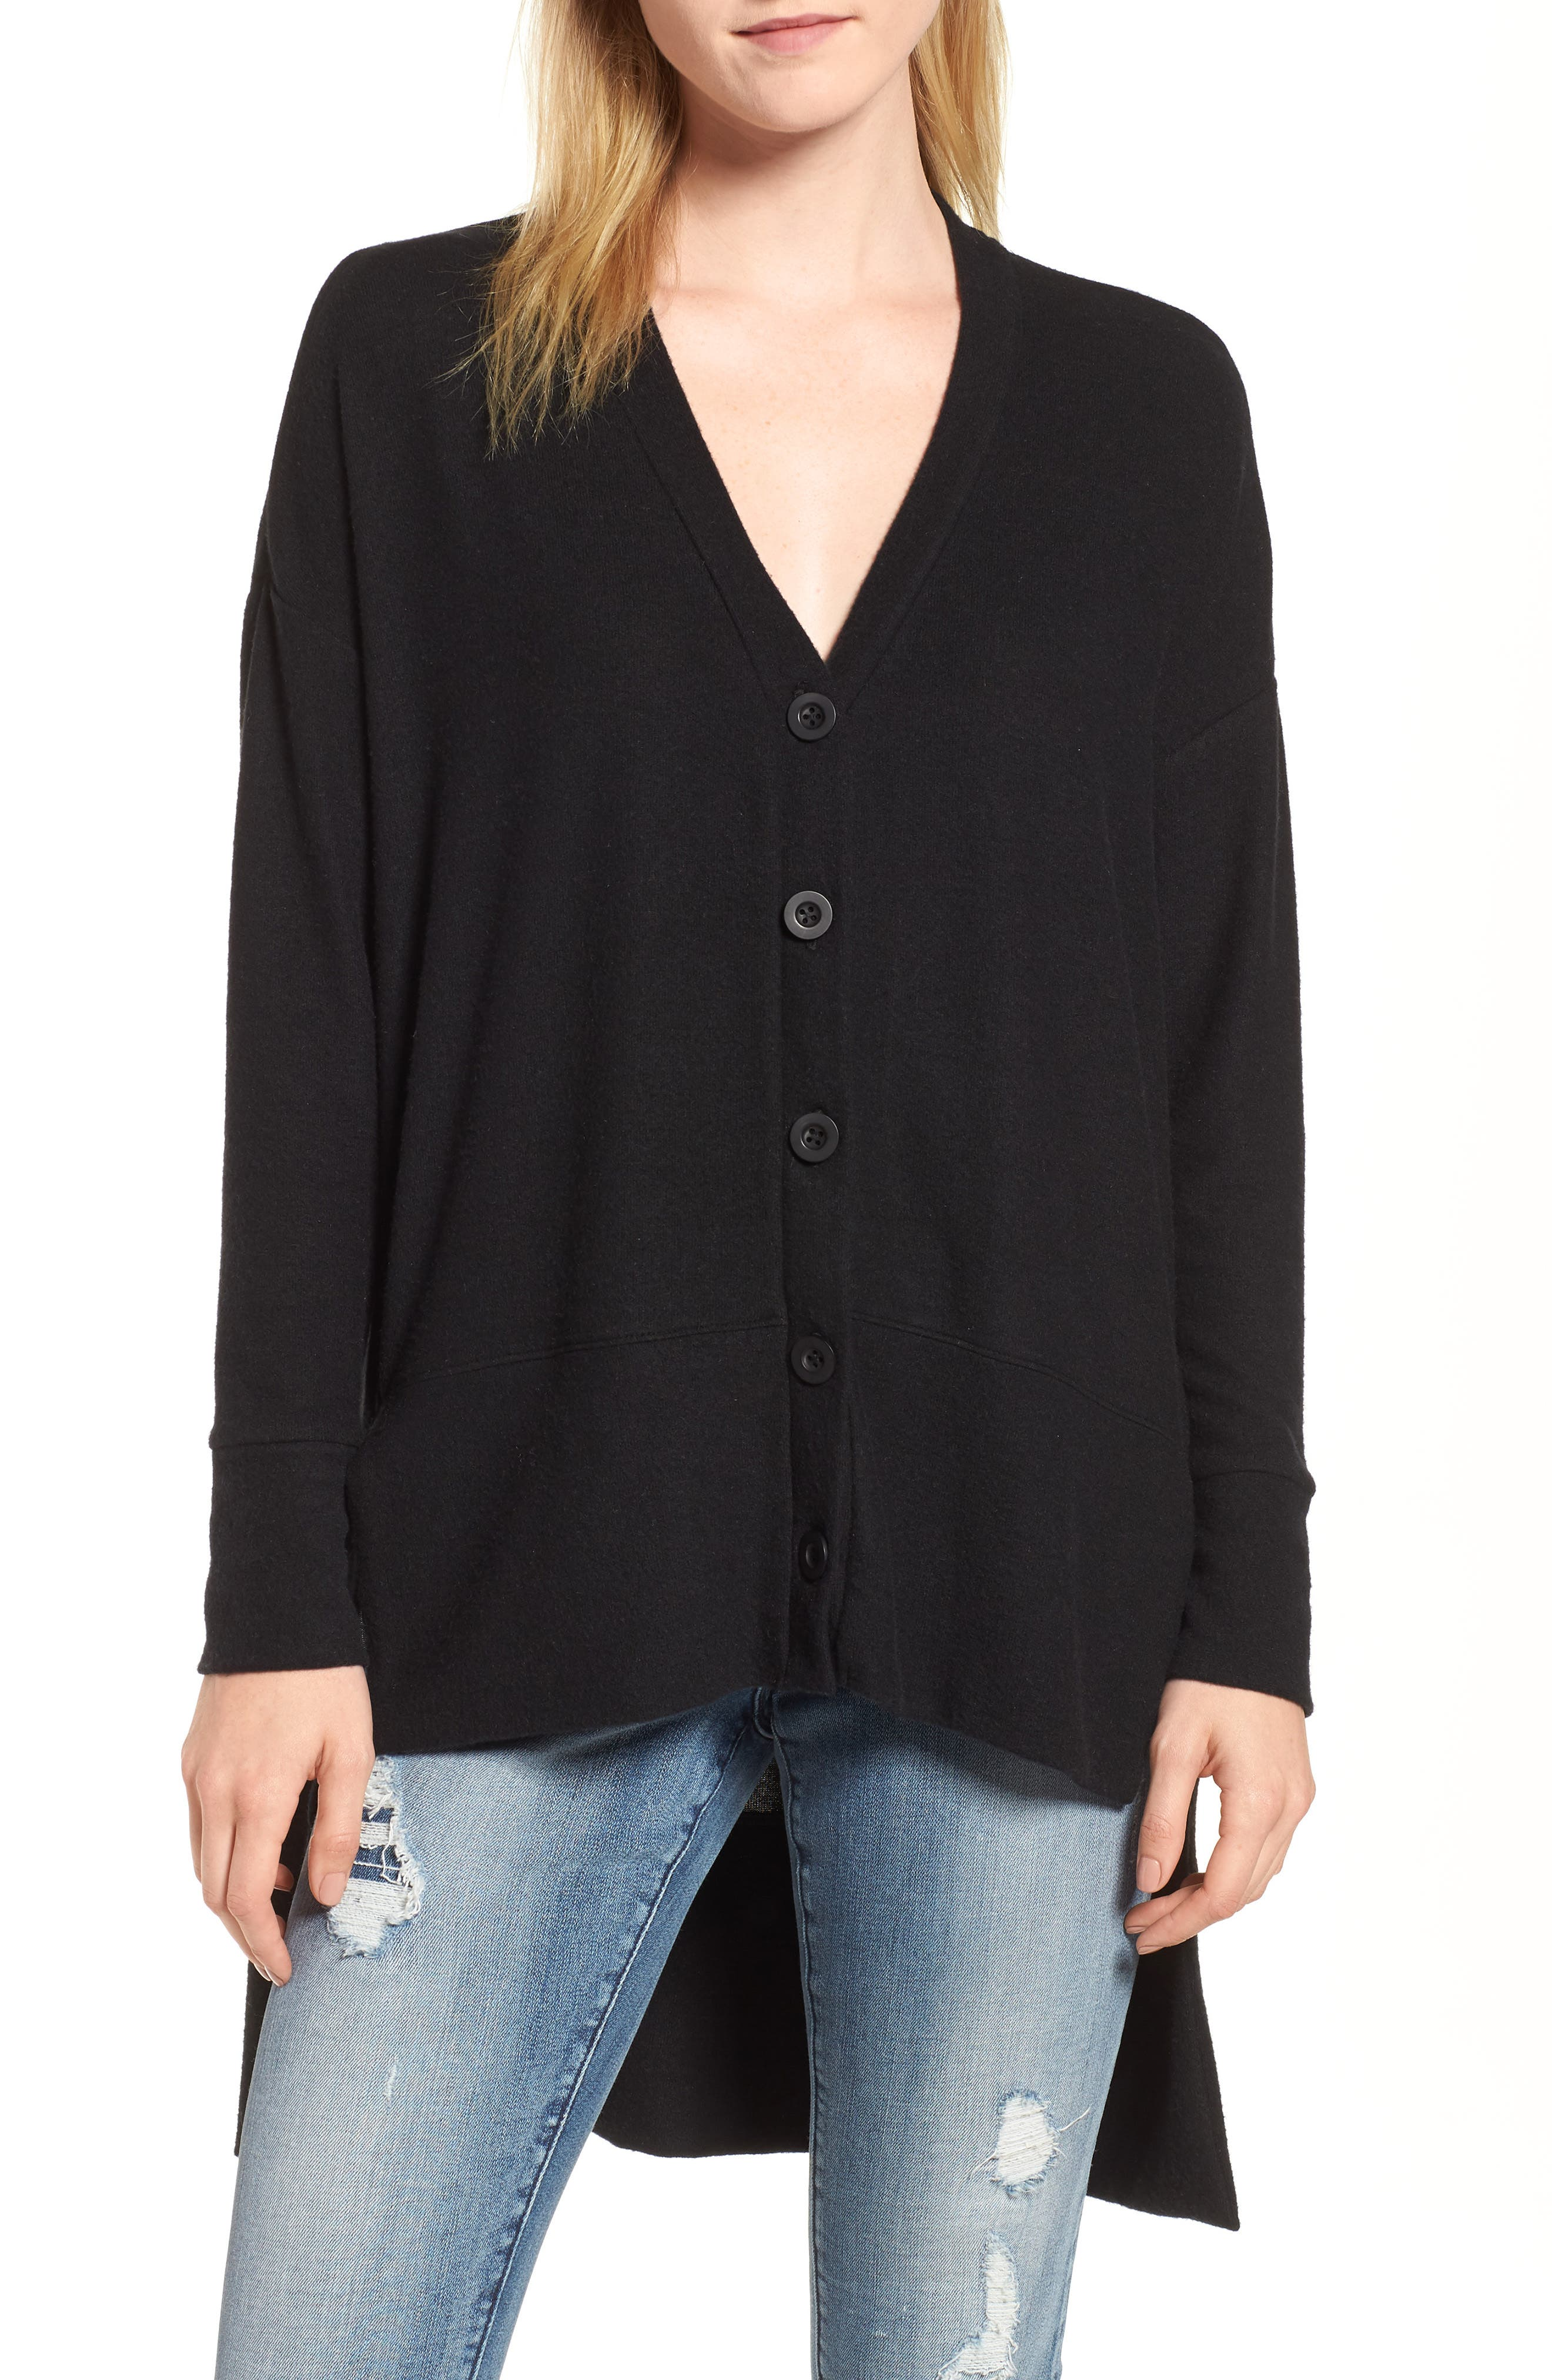 GIBSON, High/Low Easy Cardigan, Main thumbnail 1, color, BLACK